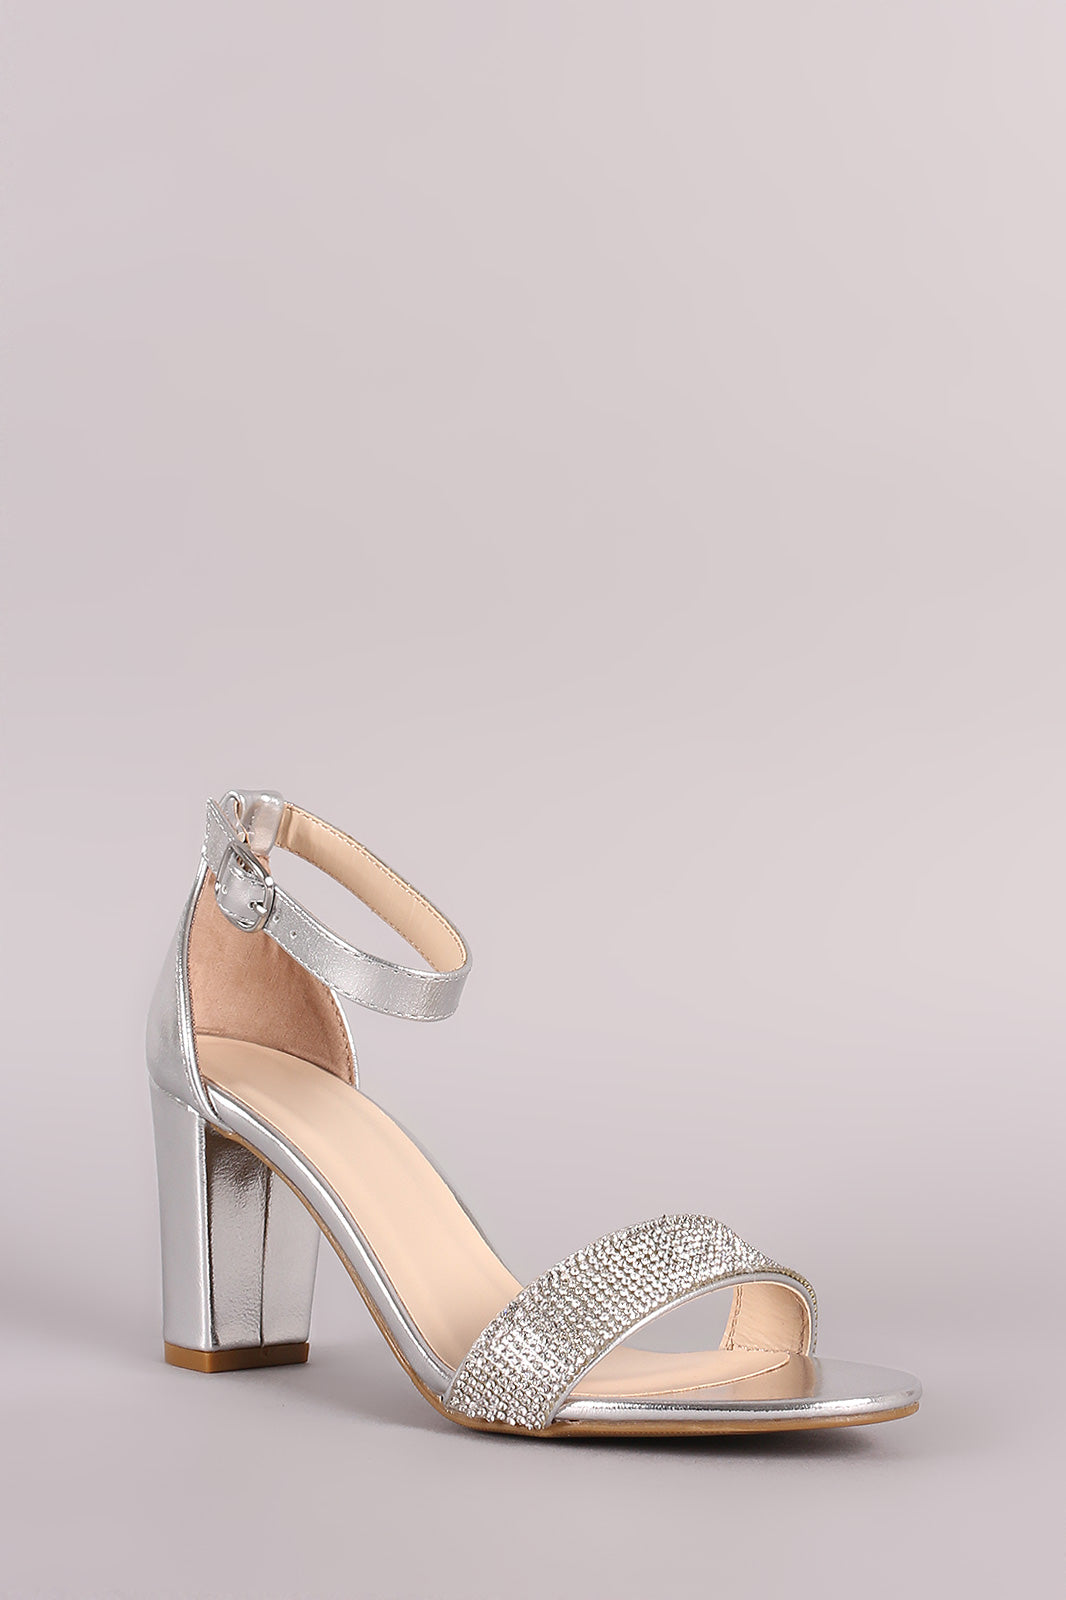 88f3921b410 Bamboo Striking-14 Silver Open Toe Block Heel with Ankle Strap ...